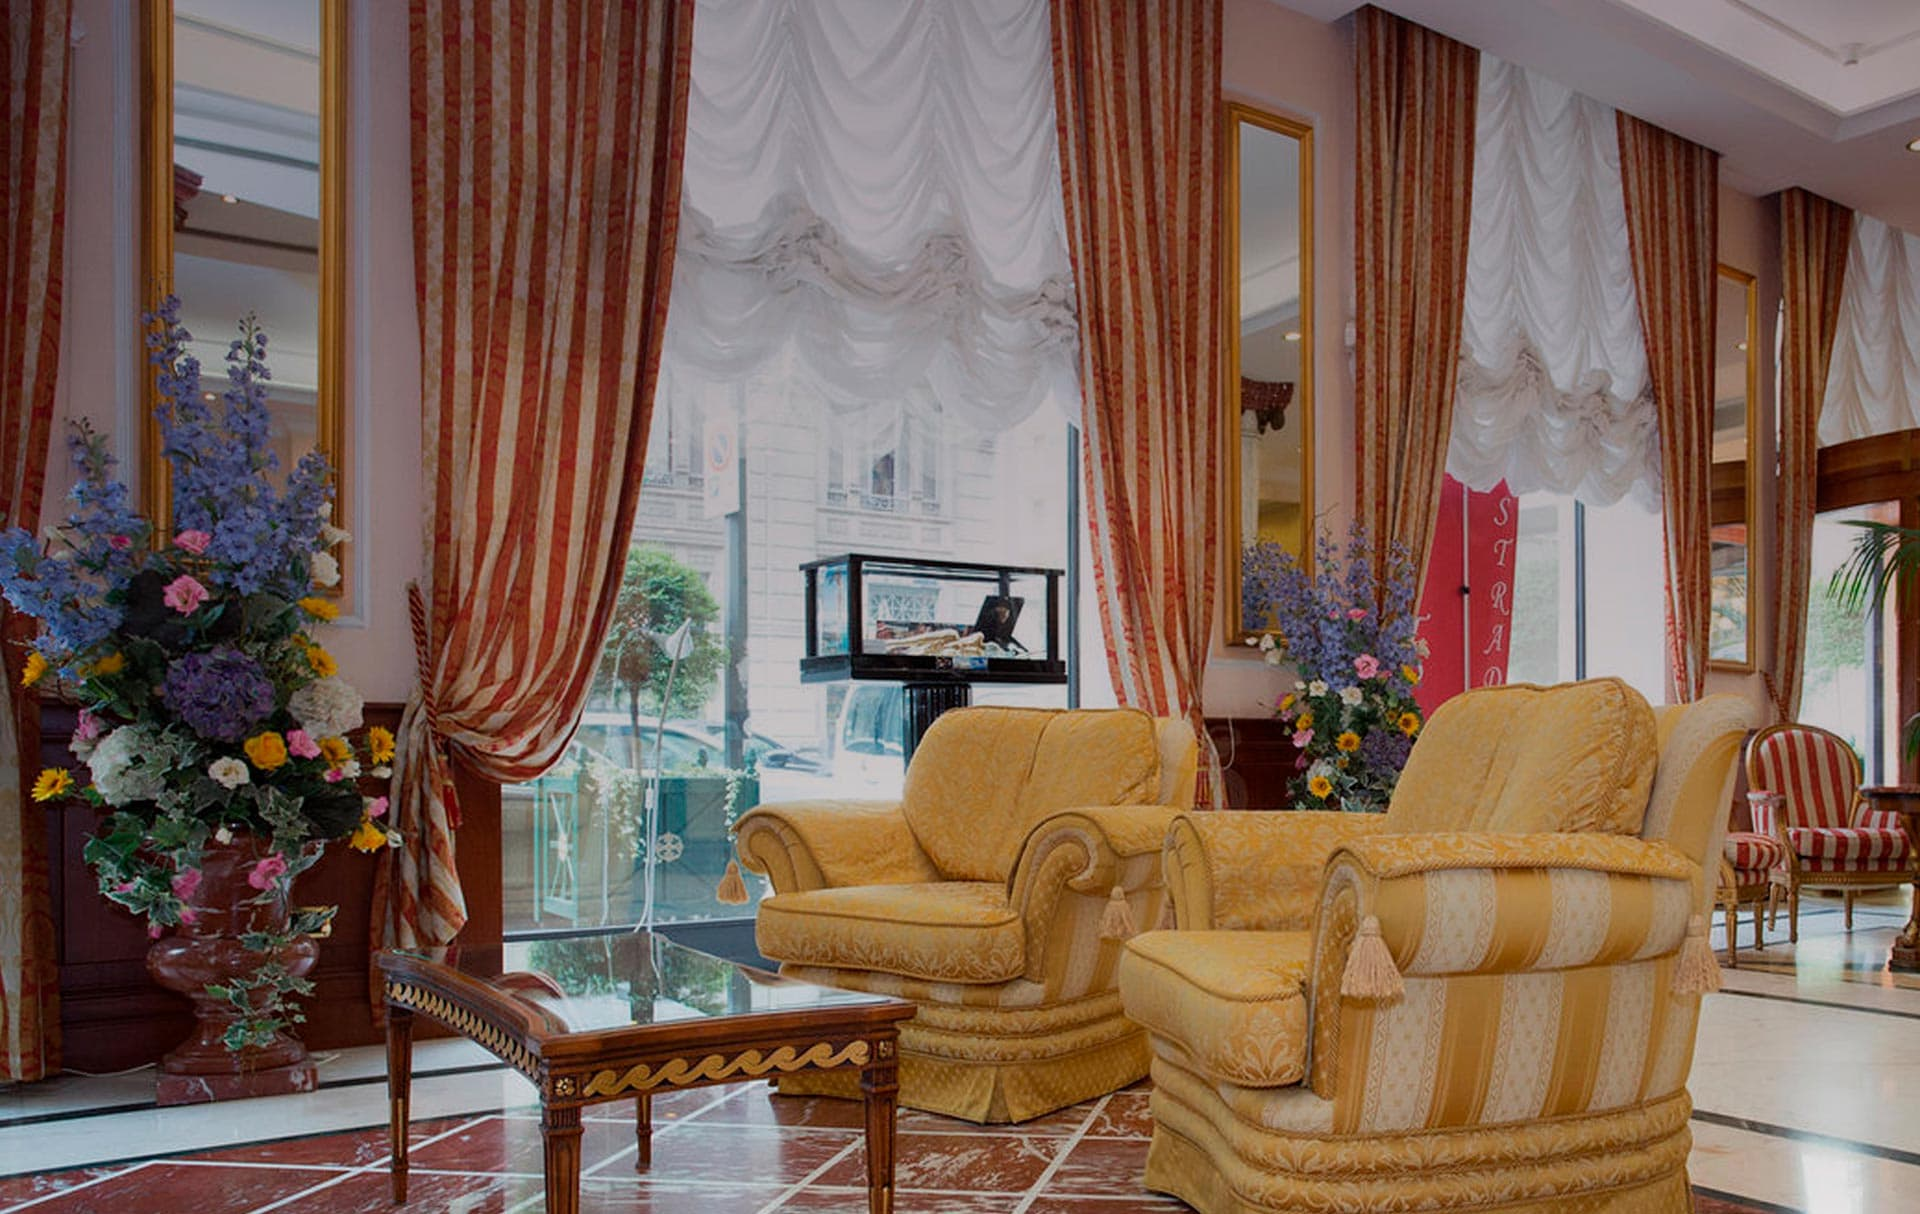 Hotel Andreola central - Milán - SPECIAL HOTEL FOR YOUR WONDERFUL STAY IN MILAN ITALY